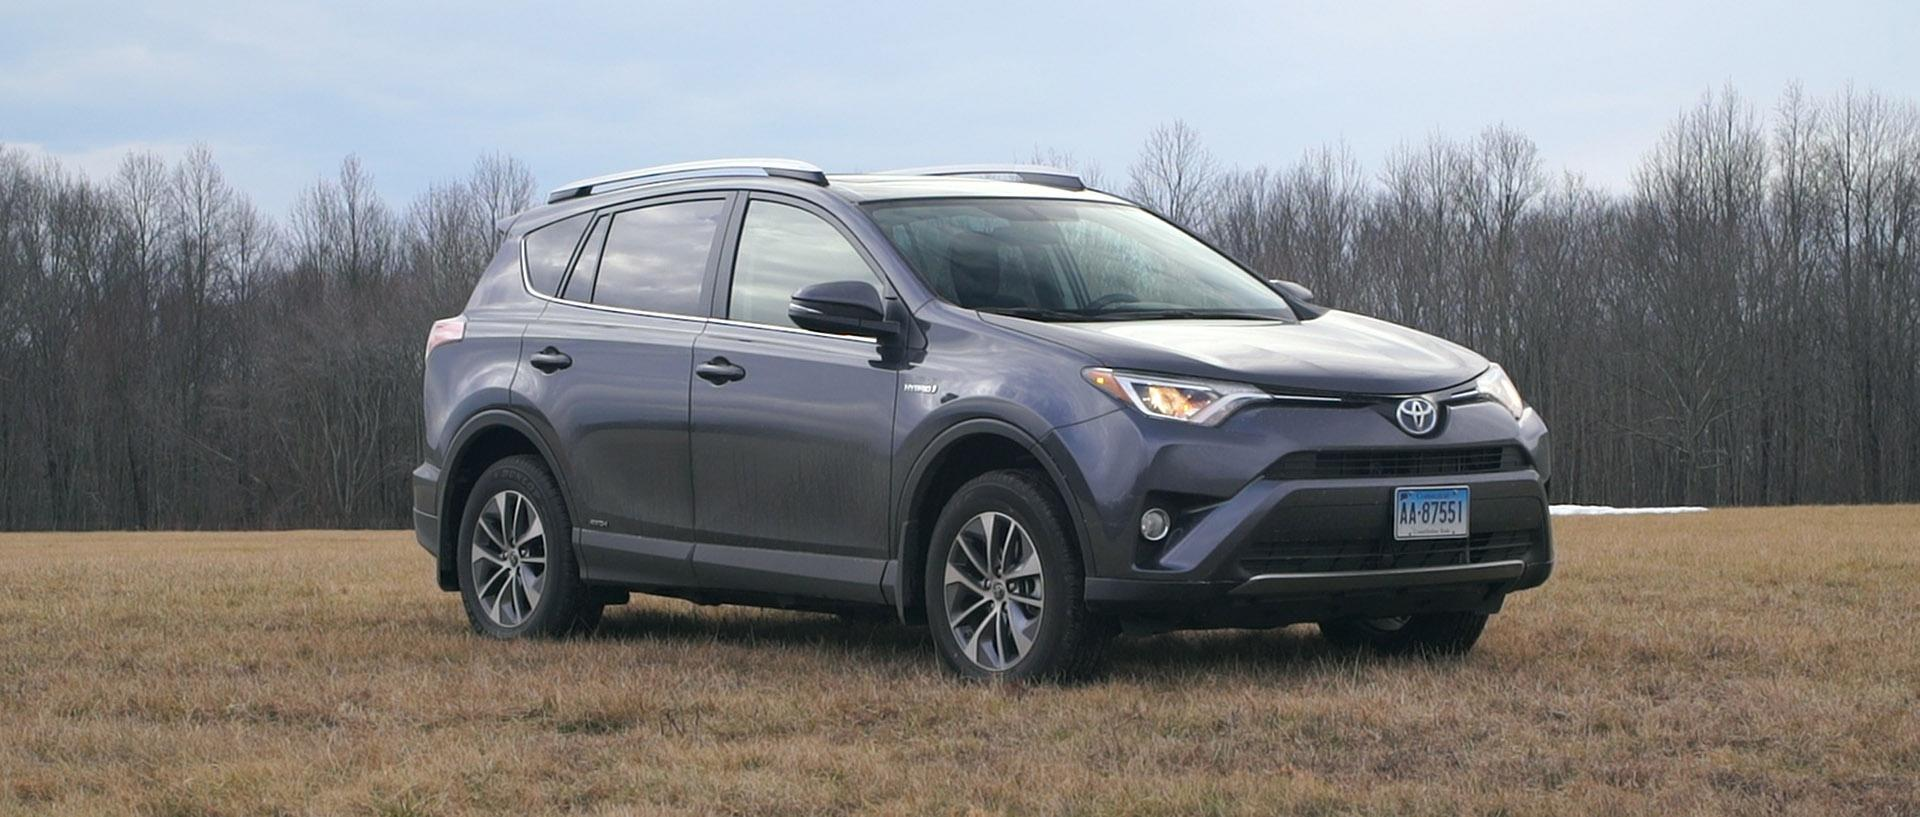 Toyota RAV4 Hybrid Proves to Be the Most Fuel-Efficient SUV Ever Tested